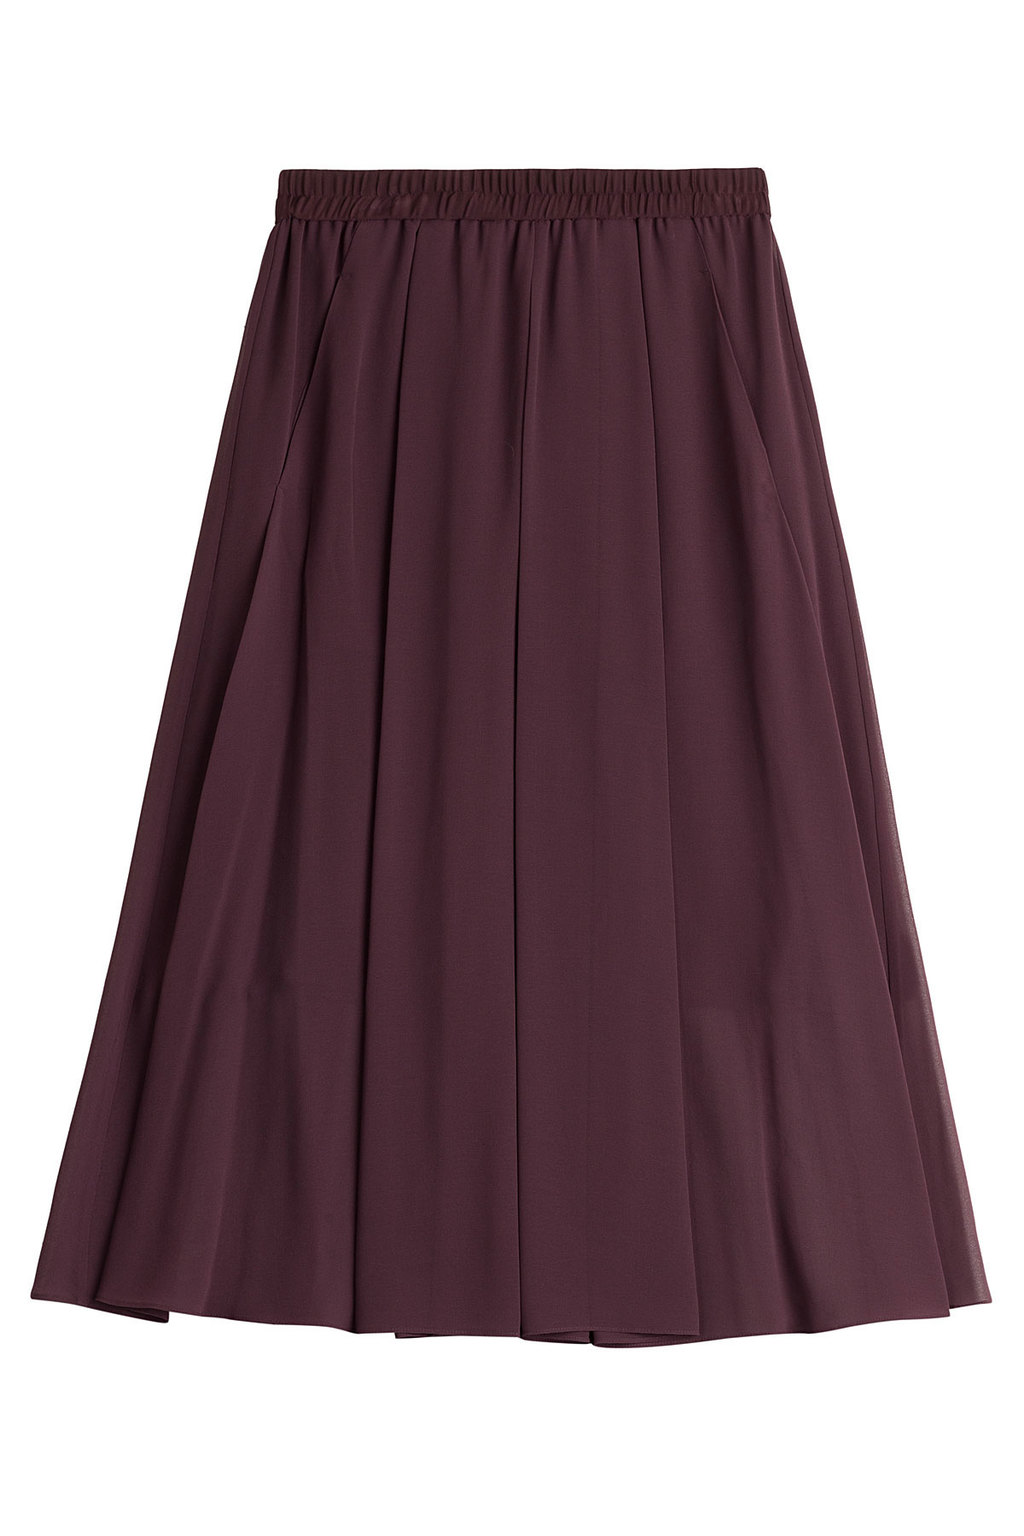 Midi Skirt - length: calf length; pattern: plain; fit: loose/voluminous; style: pleated; waist detail: elasticated waist; waist: mid/regular rise; predominant colour: purple; occasions: casual, evening, creative work; fibres: polyester/polyamide - 100%; hip detail: adds bulk at the hips; texture group: sheer fabrics/chiffon/organza etc.; pattern type: fabric; season: a/w 2015; wardrobe: highlight